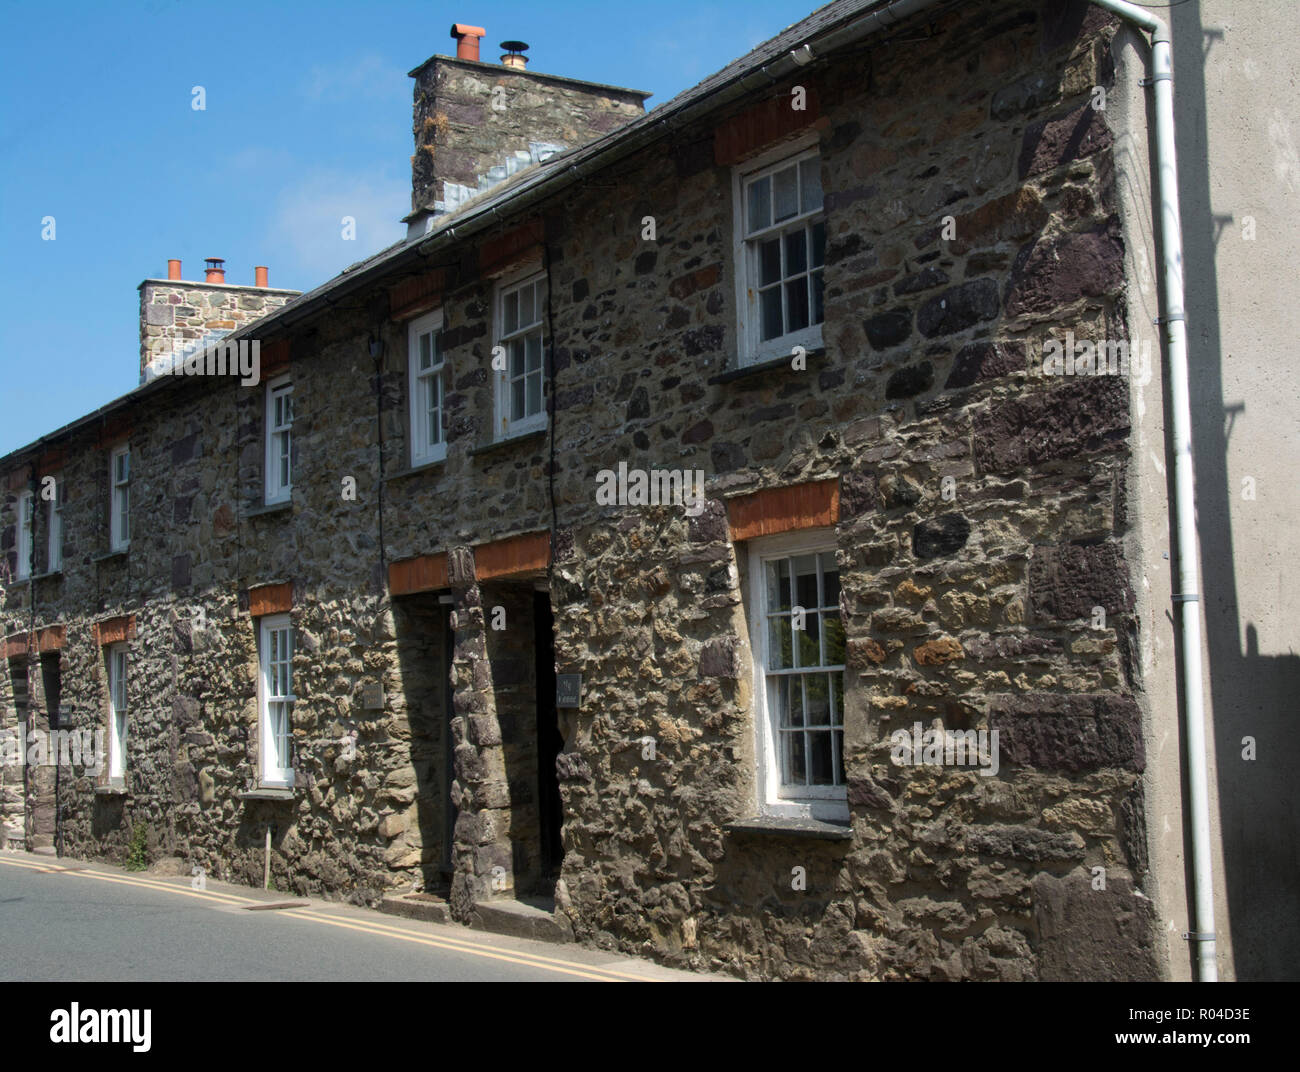 PEMBROKESHIRE; ST.DAVID'S; TERRACED STONE COTTAGES IN NUN STREET - Stock Image